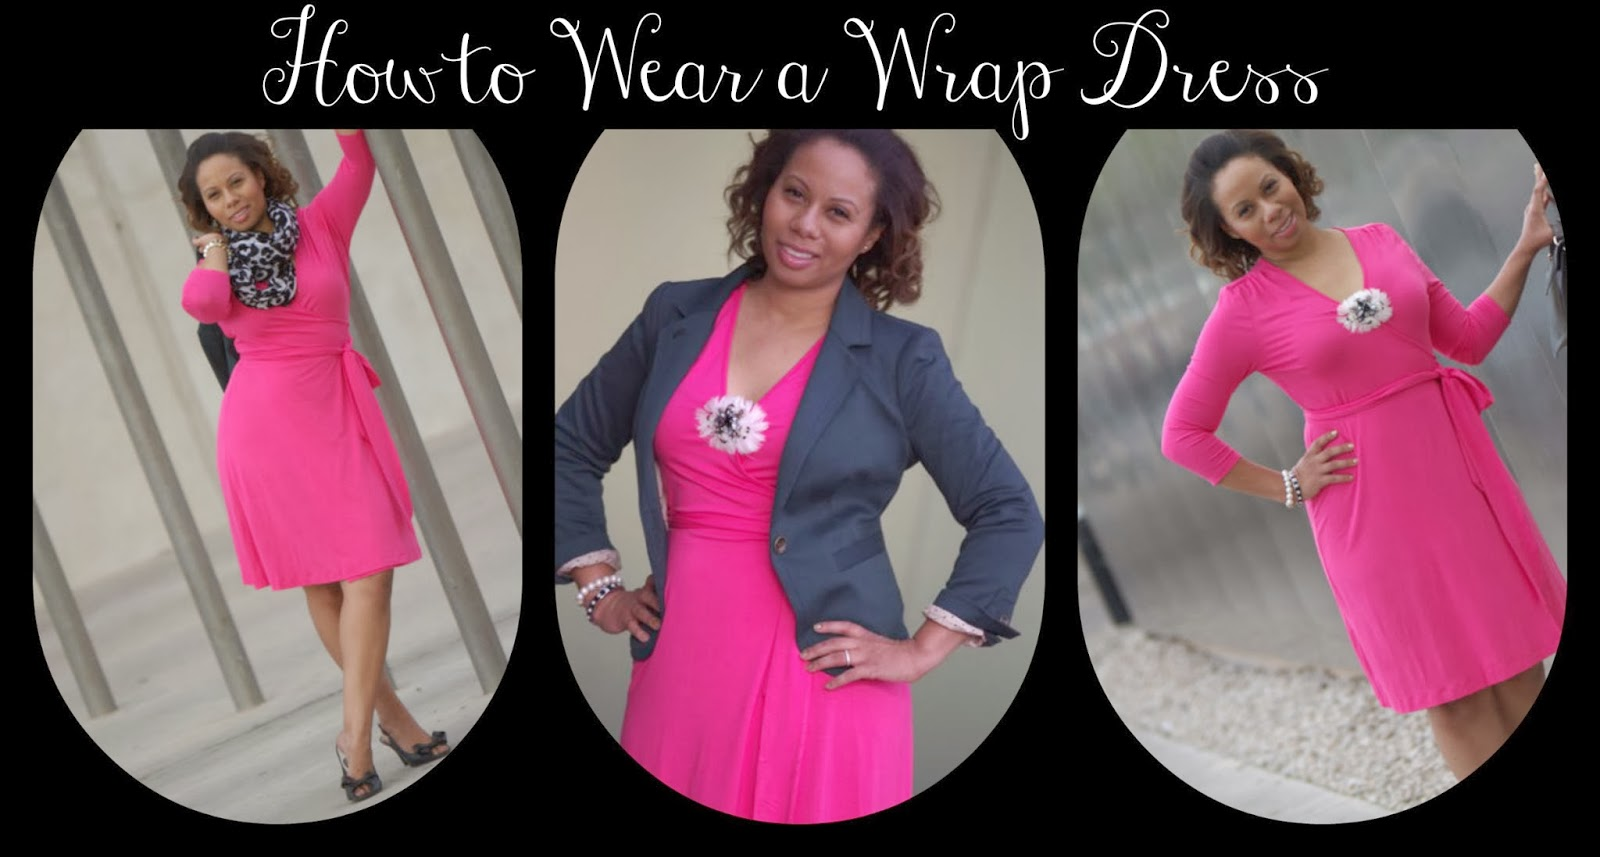 Curvy, Petite Outfit Ideas | Professional and Casual-Chic Fashion and Style Inspiration | 3 Ways to Style a Wrap Dress